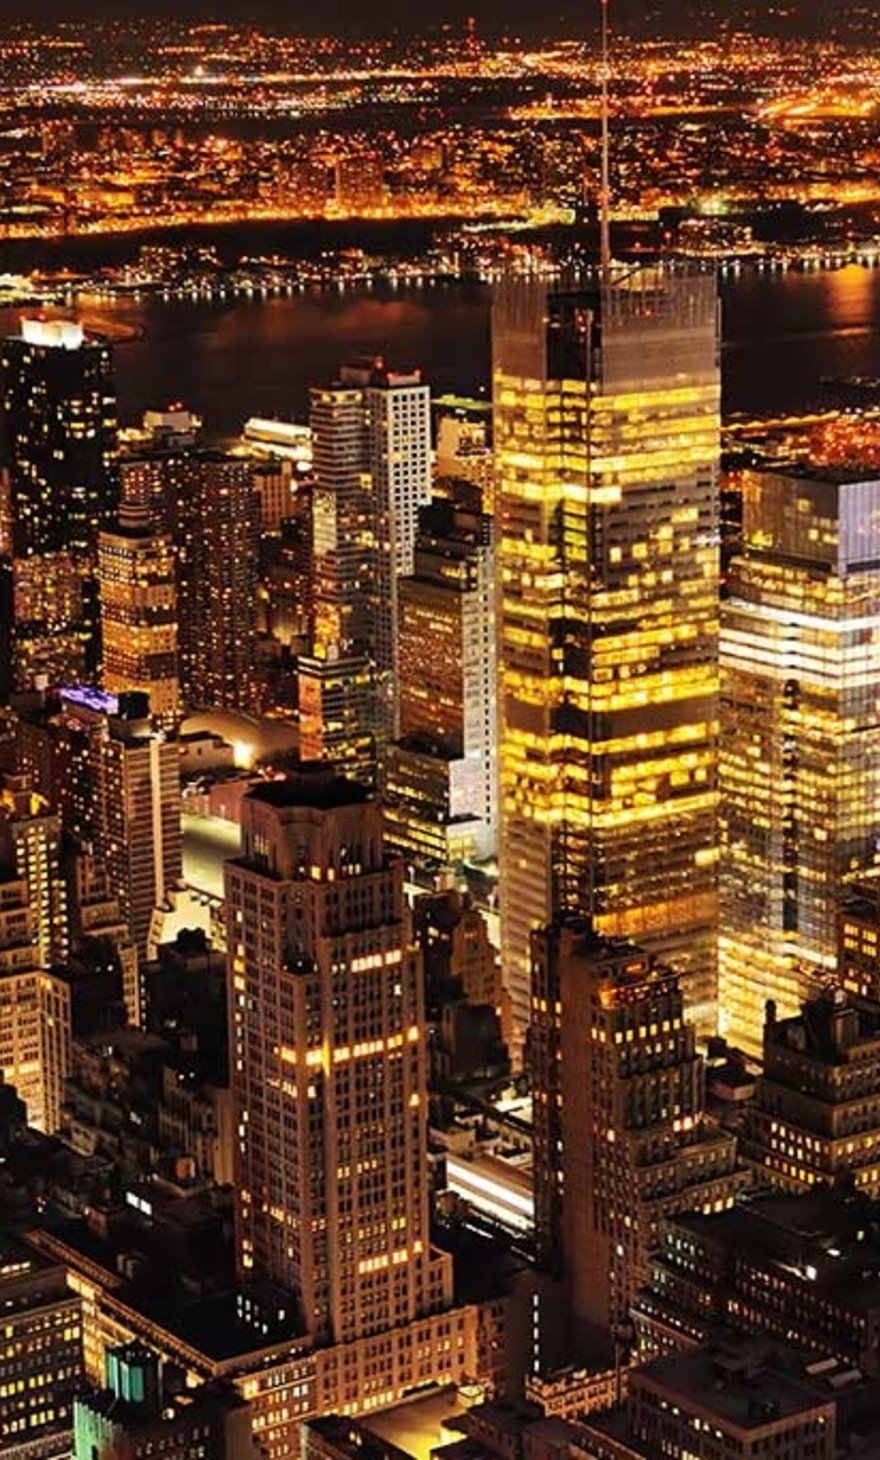 New York view by night